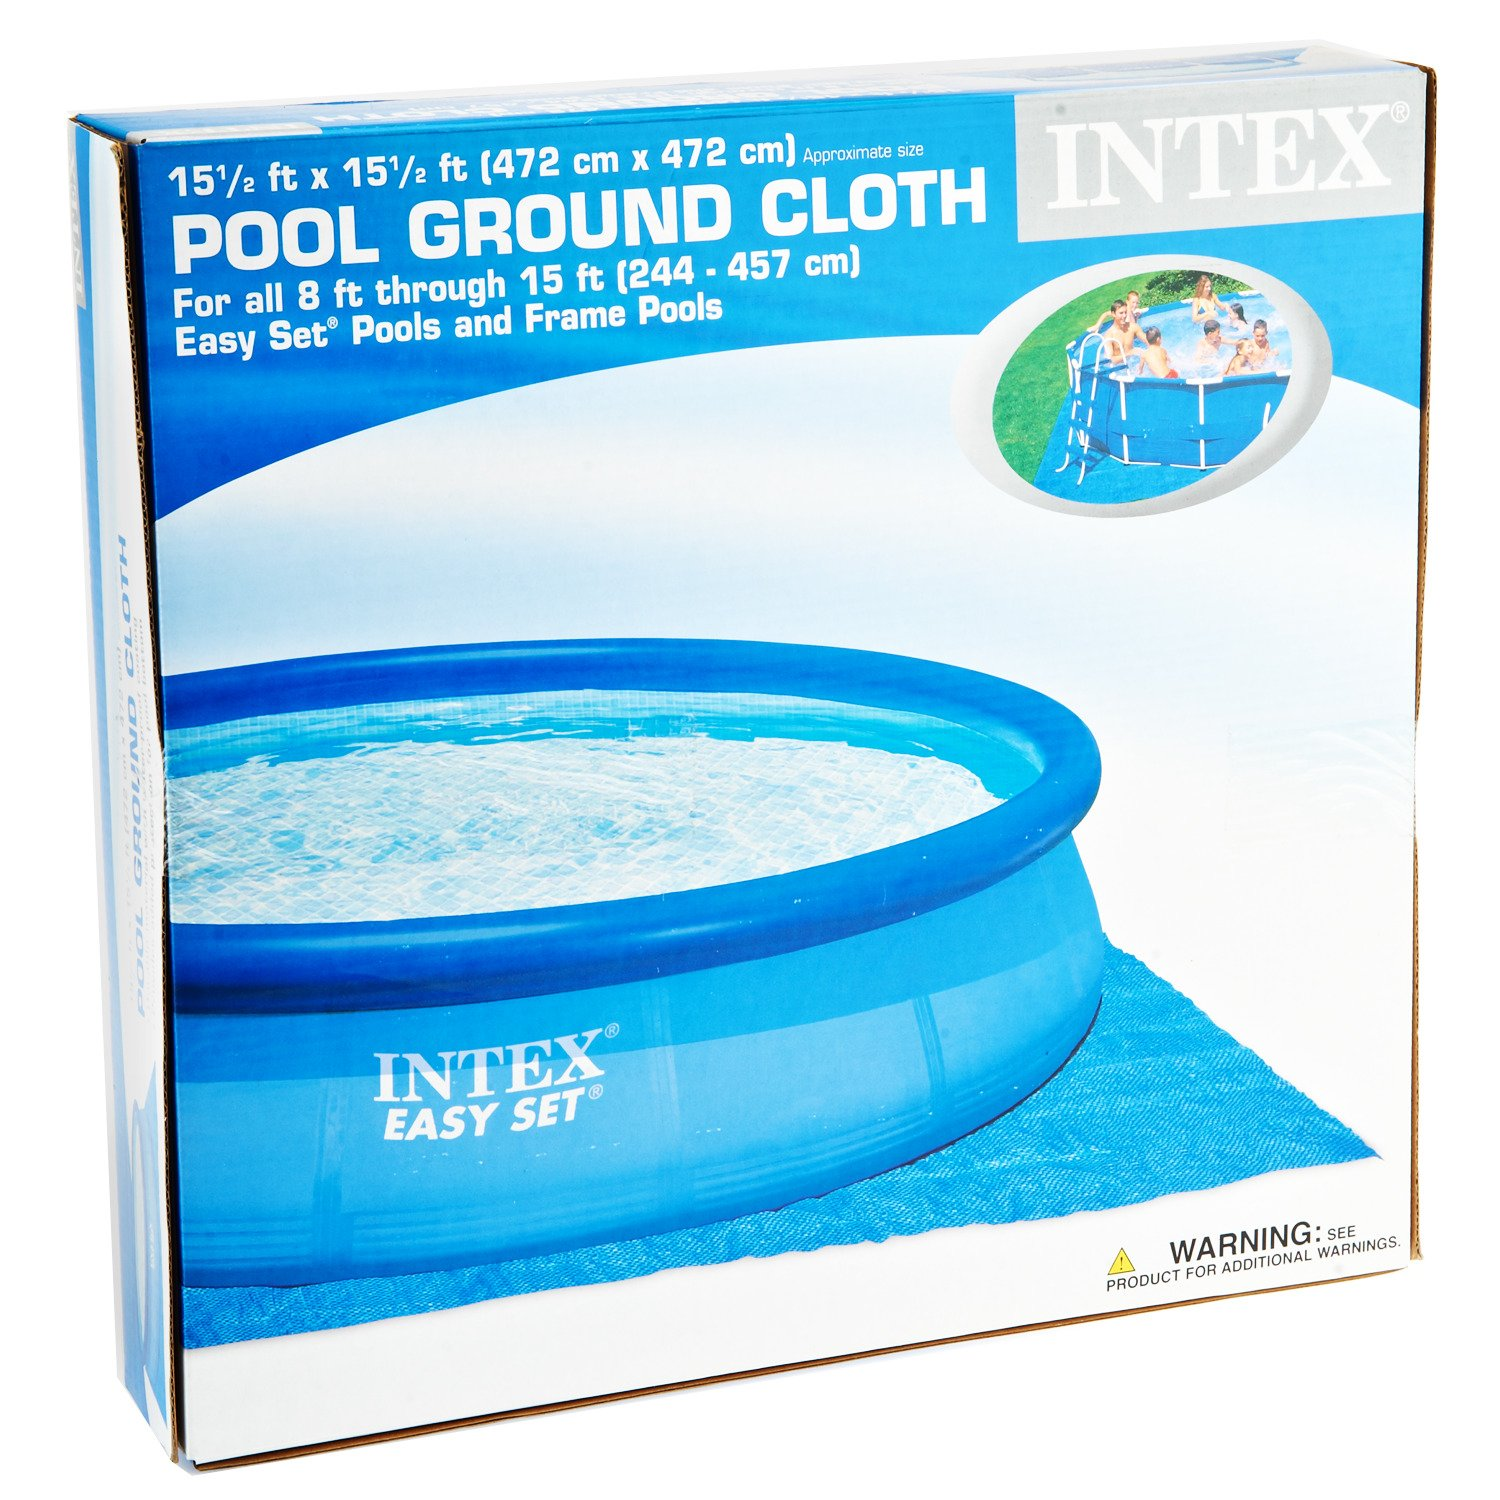 Pool Accessories   Pool Supplies, Swimming Pool Accessories   Academy